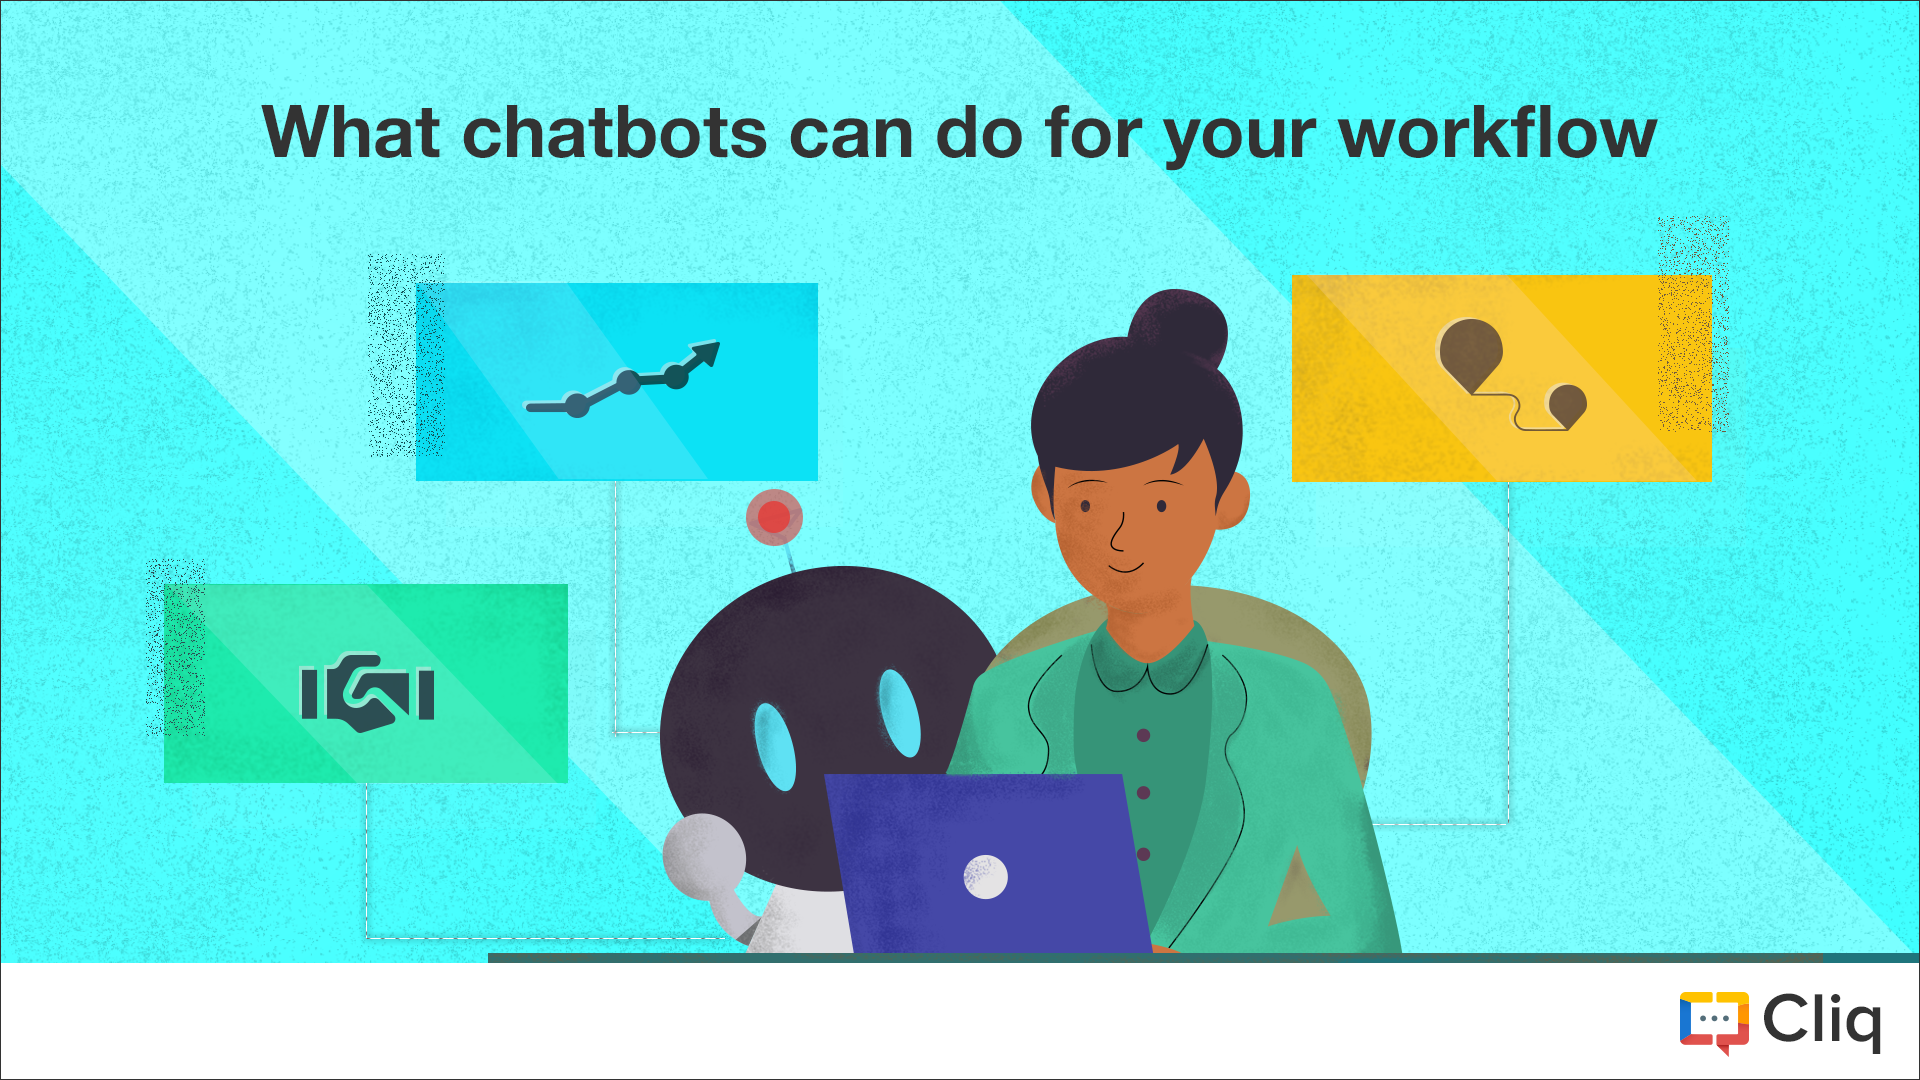 Bots on the rise: What chatbots can do for your workflow